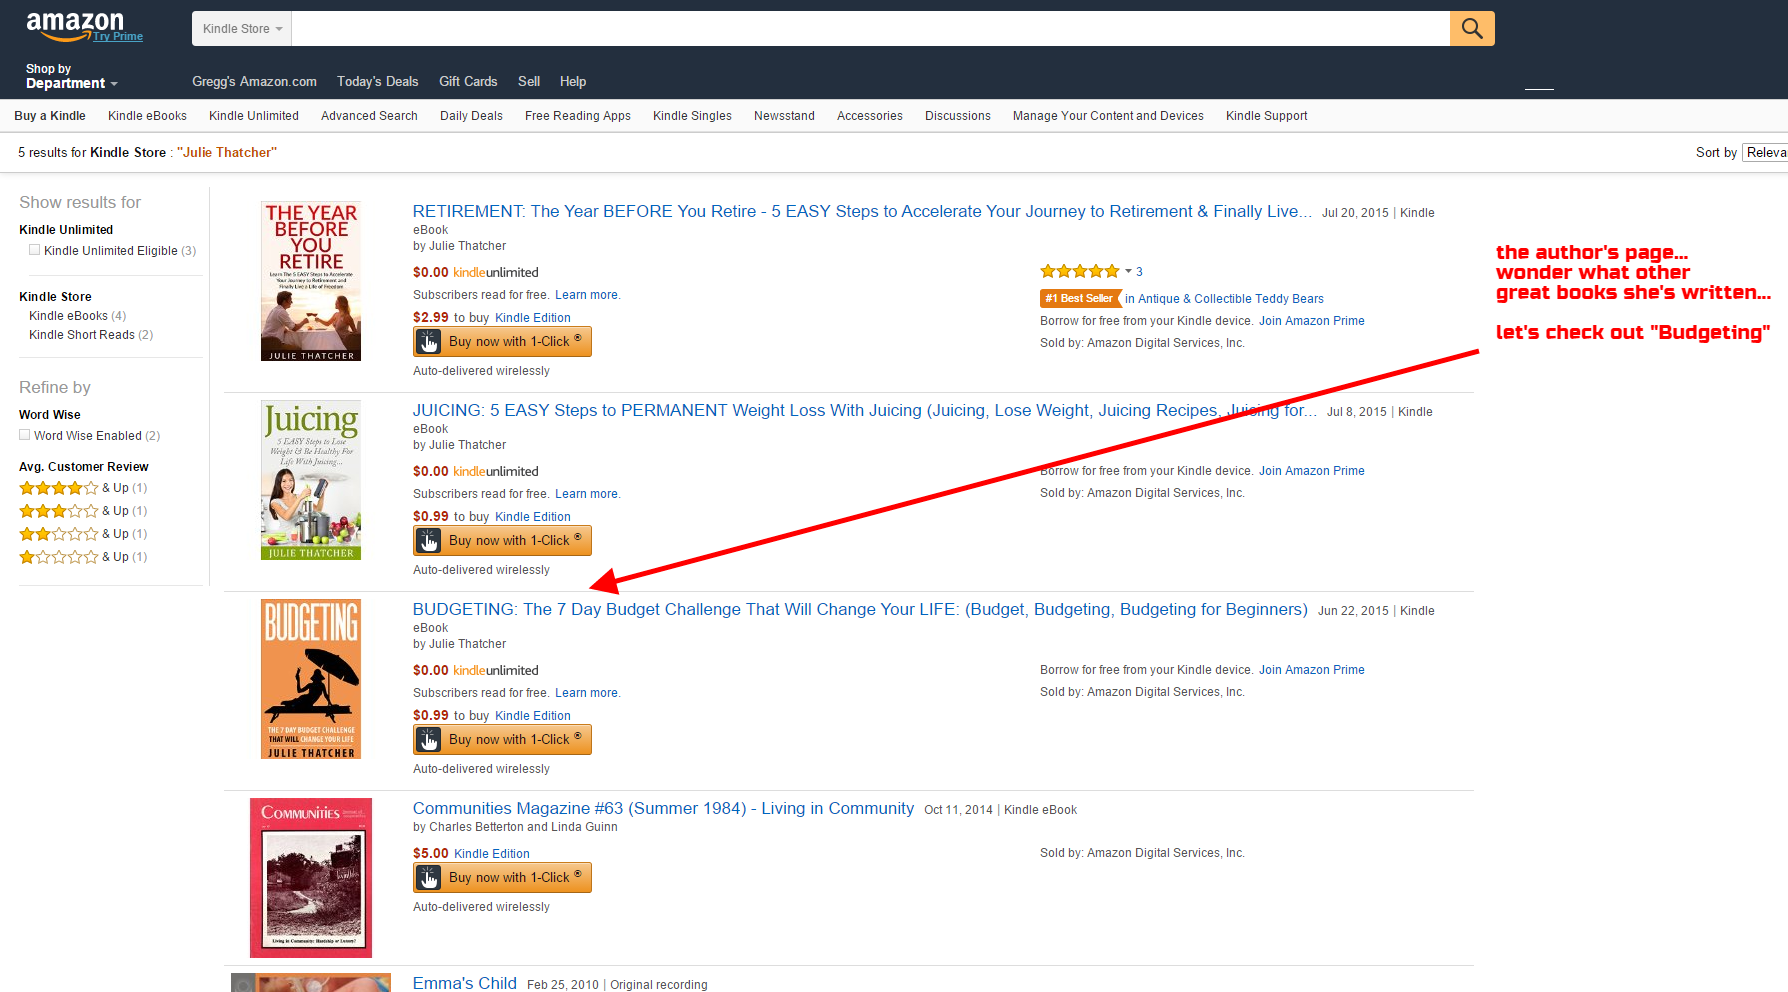 03 - Amazon Kindle SEO - scam example - author books